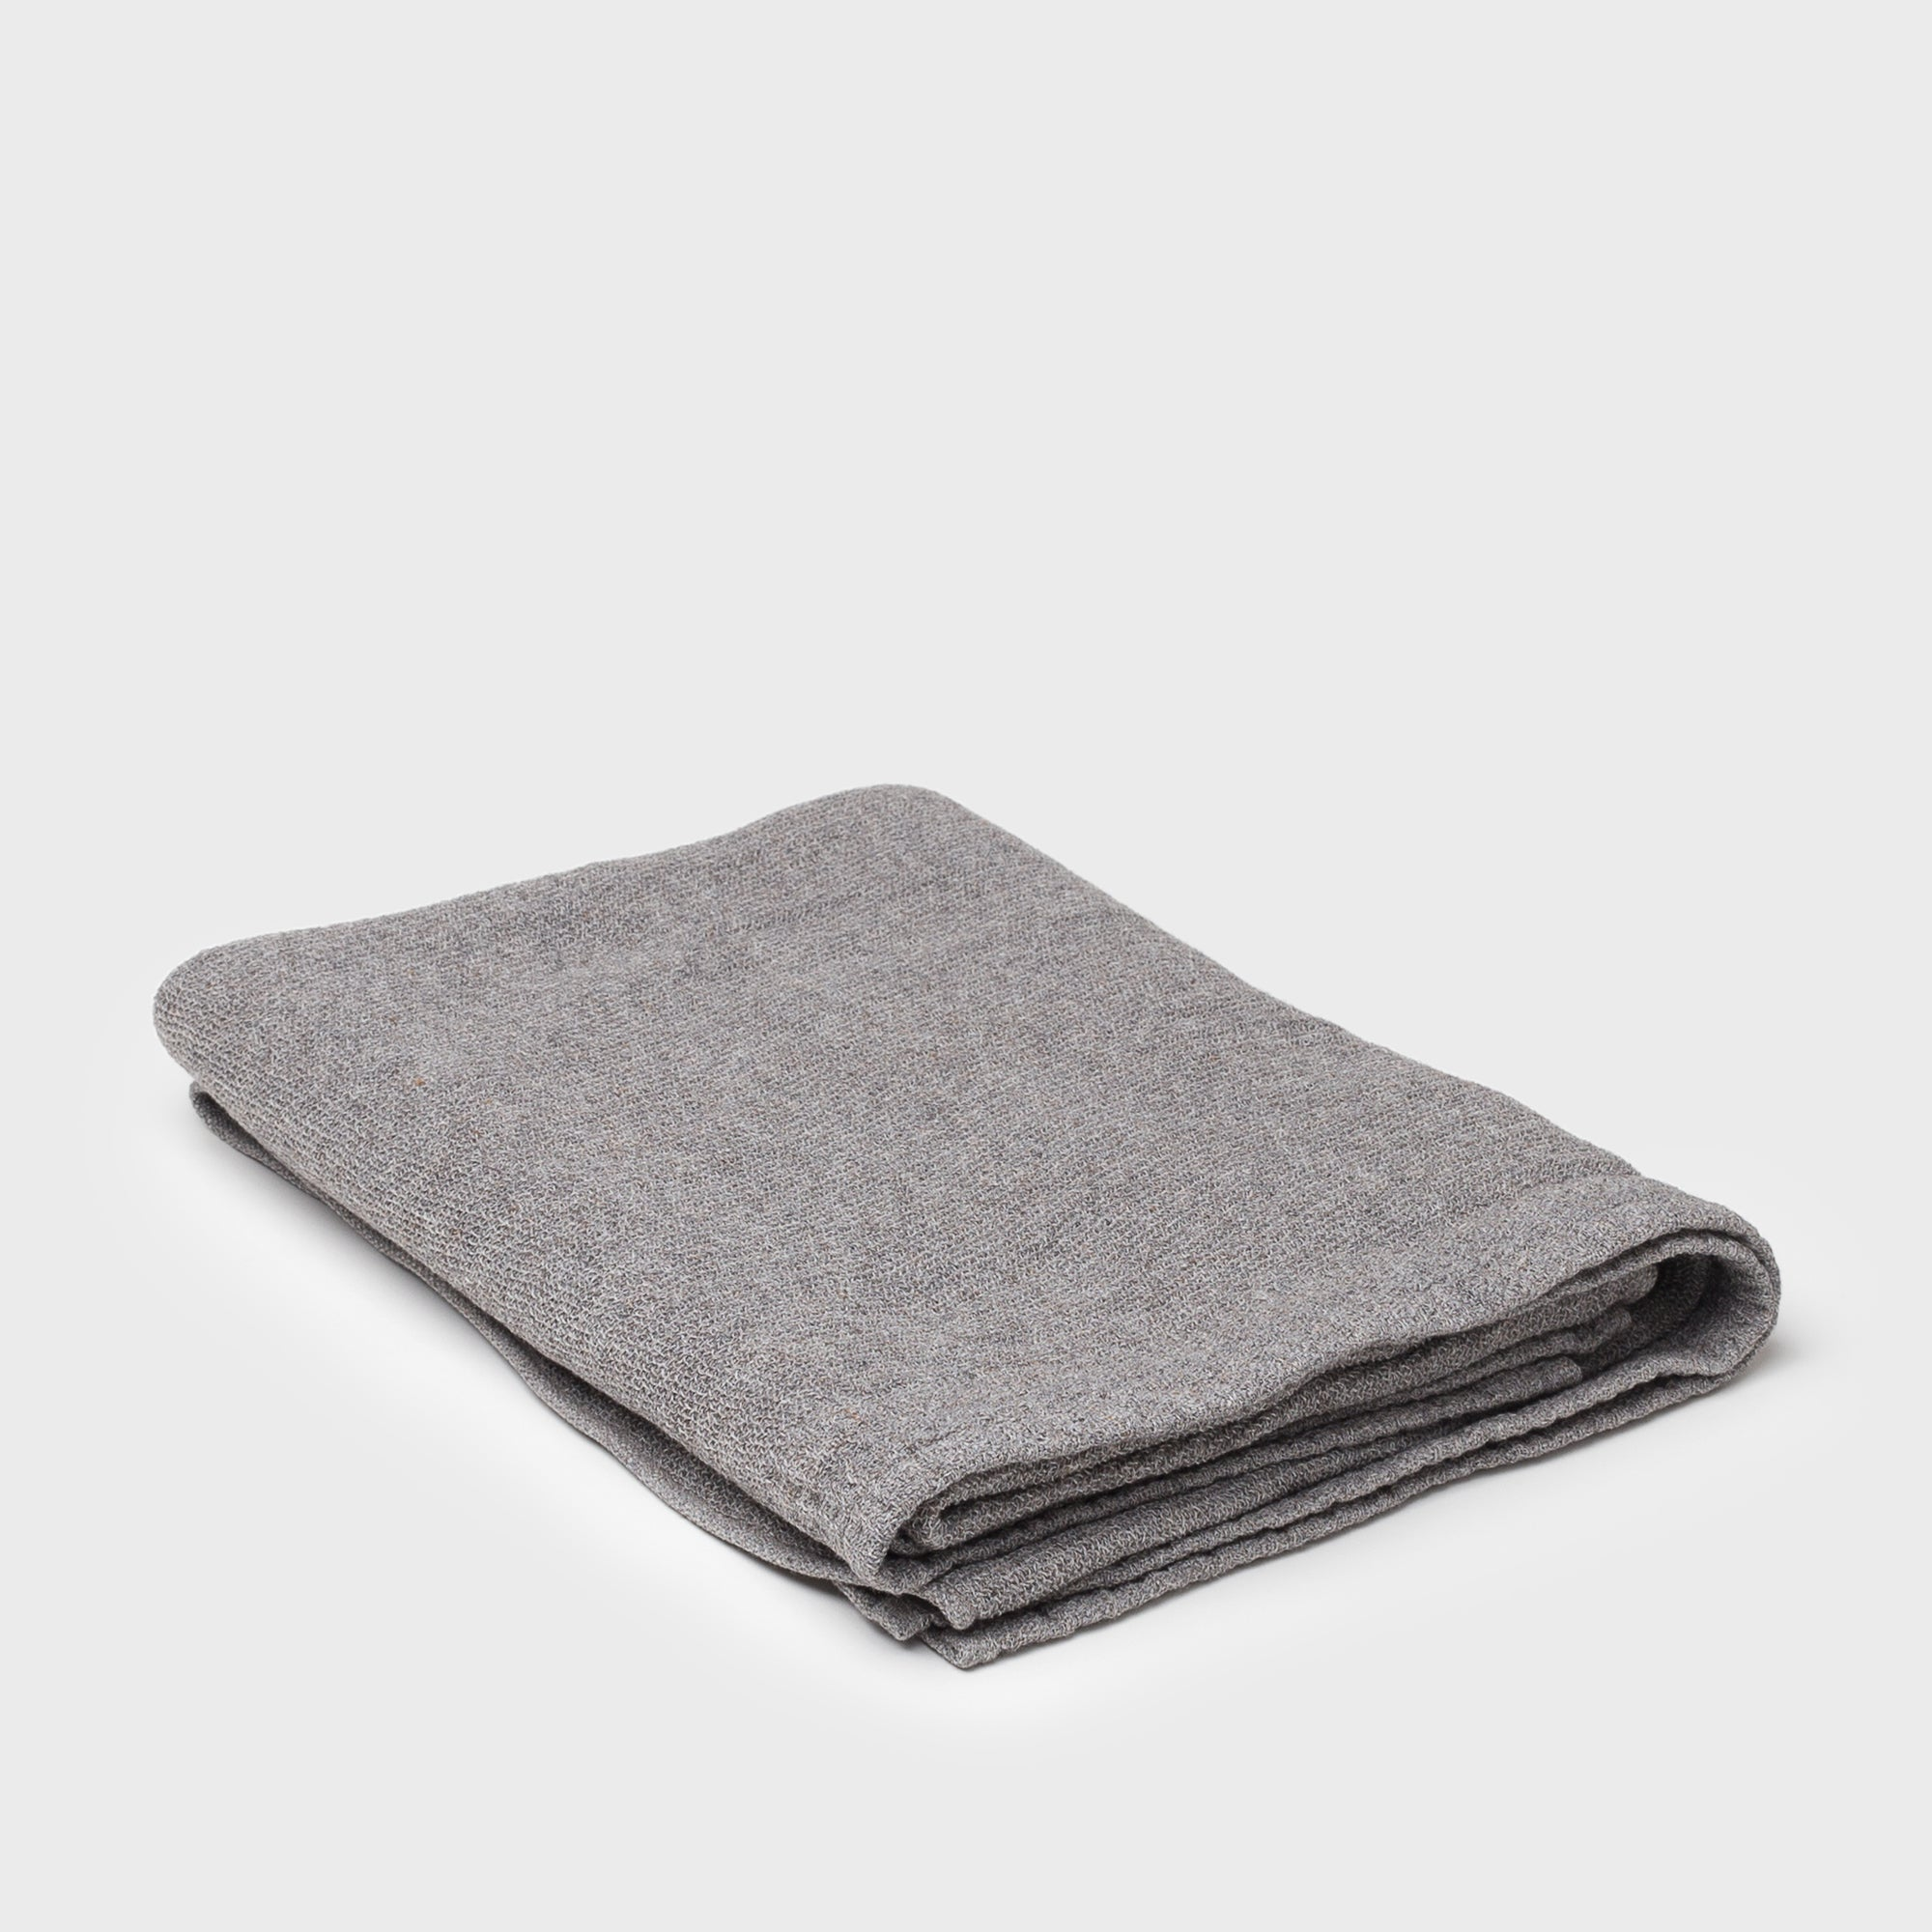 Lana Towel in Grey - Bath – Shoppe Amber Interiors